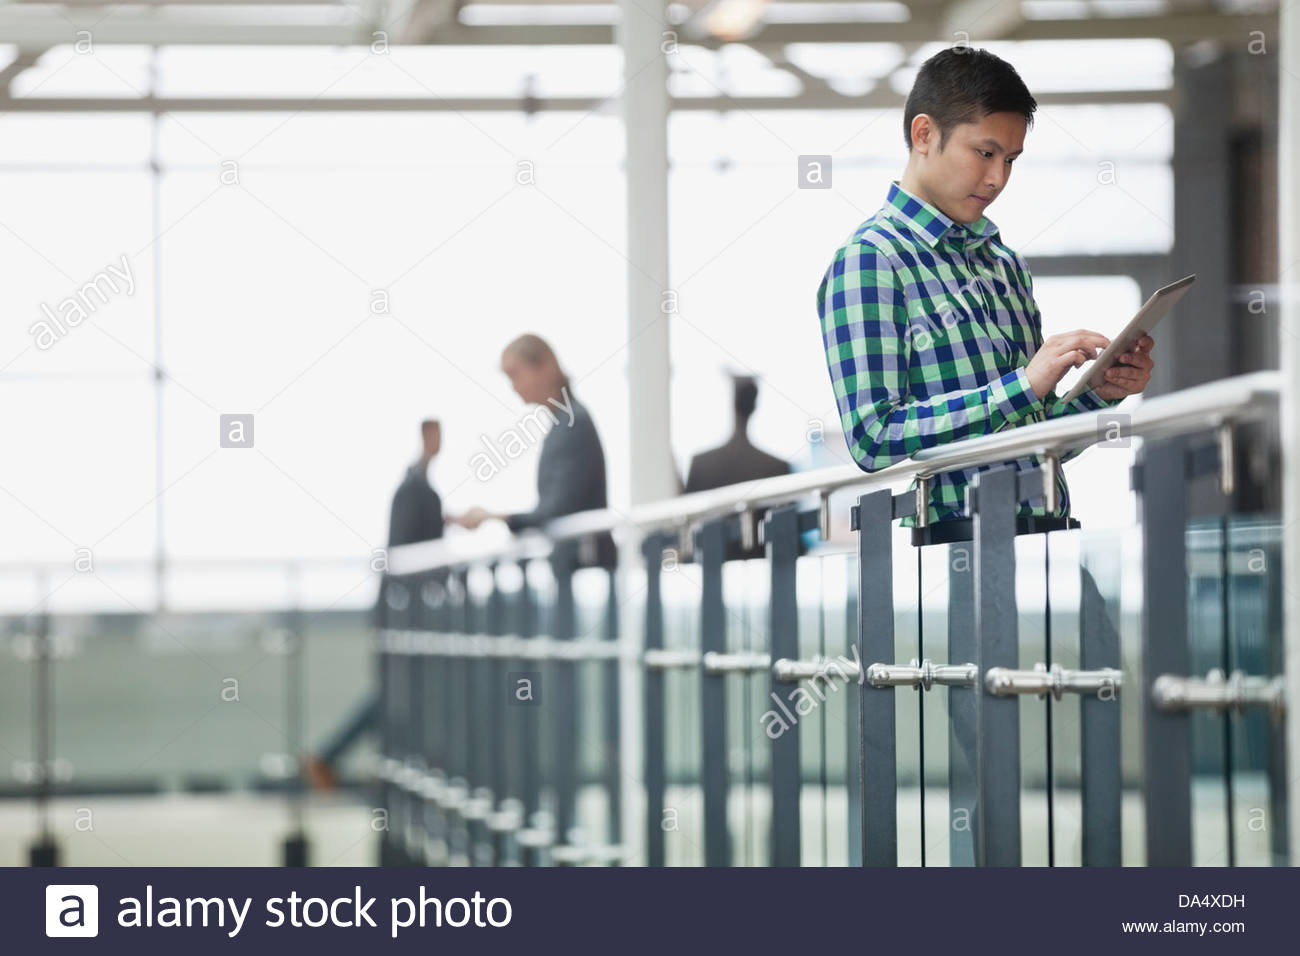 Businessman using digital tablet in office building - Stock Image